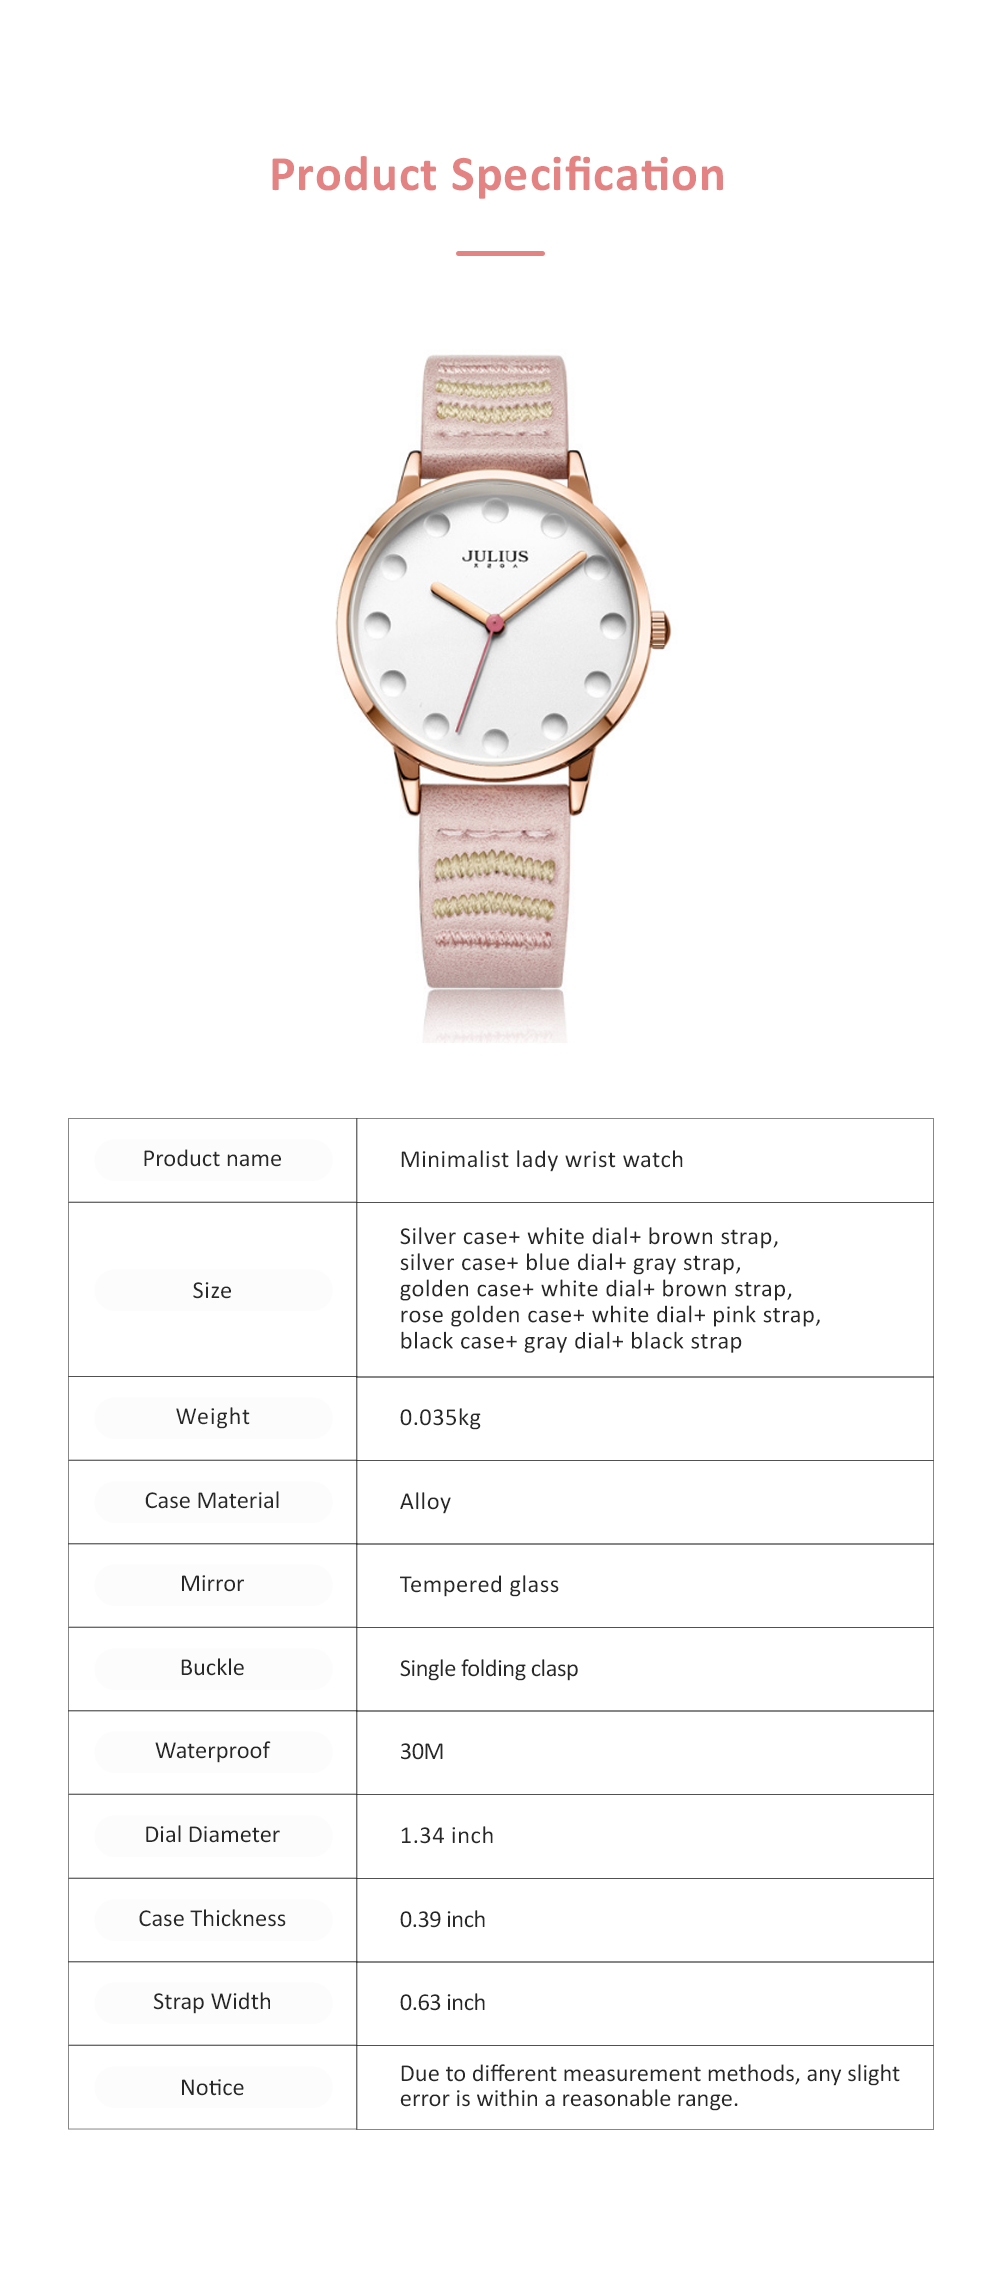 Lady Stylish Minimalist 30M Waterproof Quartz Wrist Watch with Microfiber Leather Strap Delicate Stitching Decoration 6